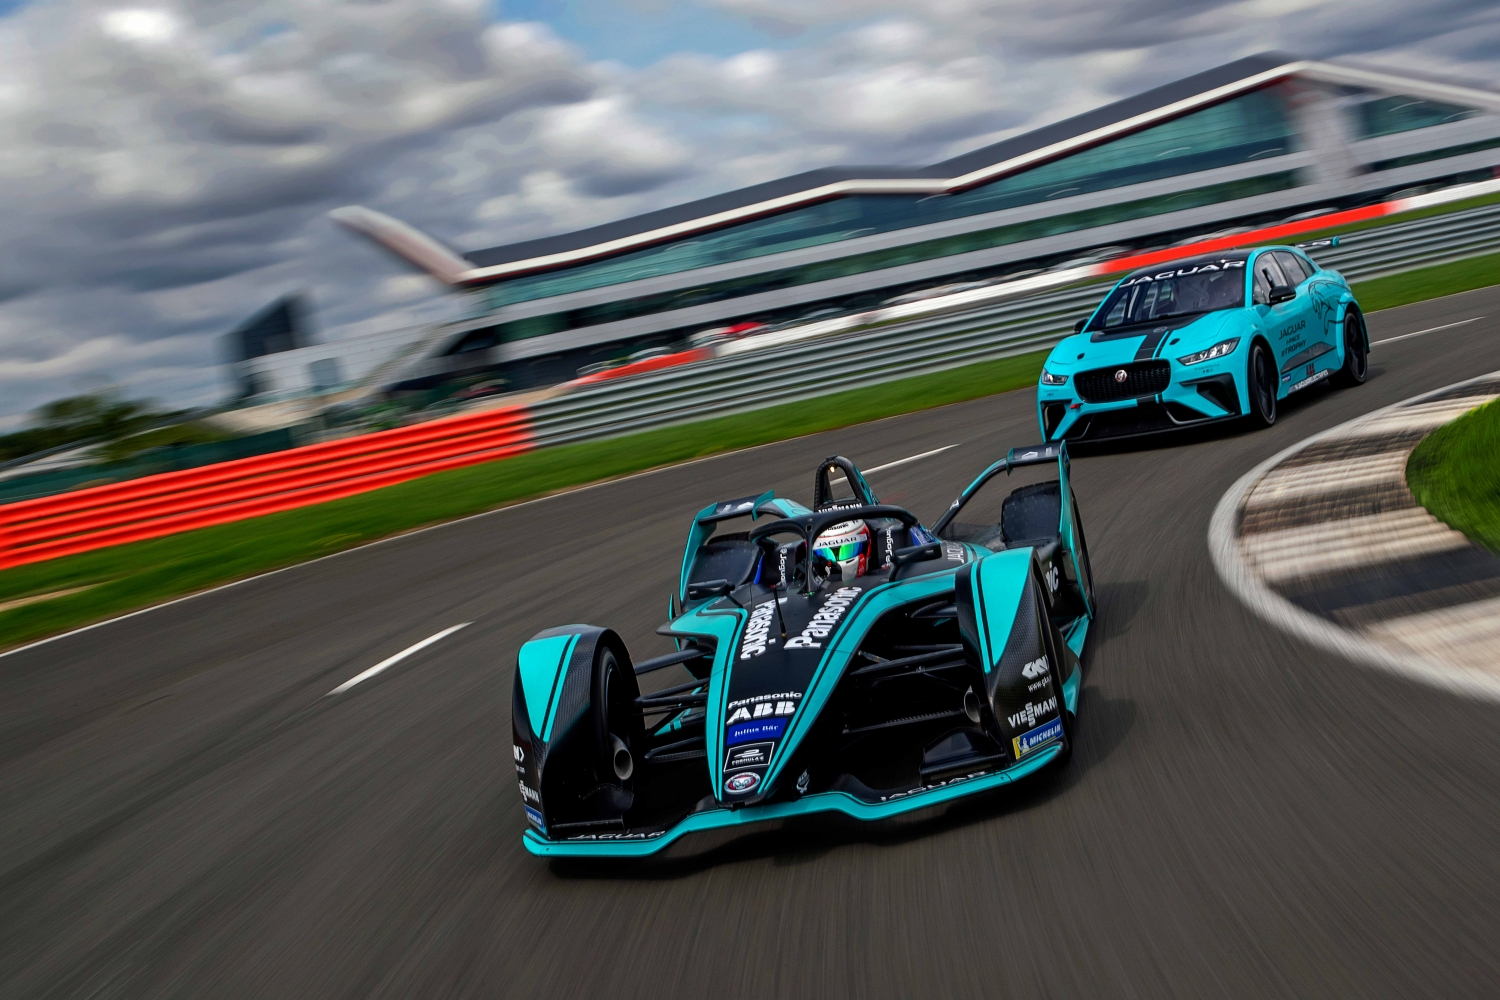 Jaguar I-TYPE 3 and I-PACE eTROPHY on track